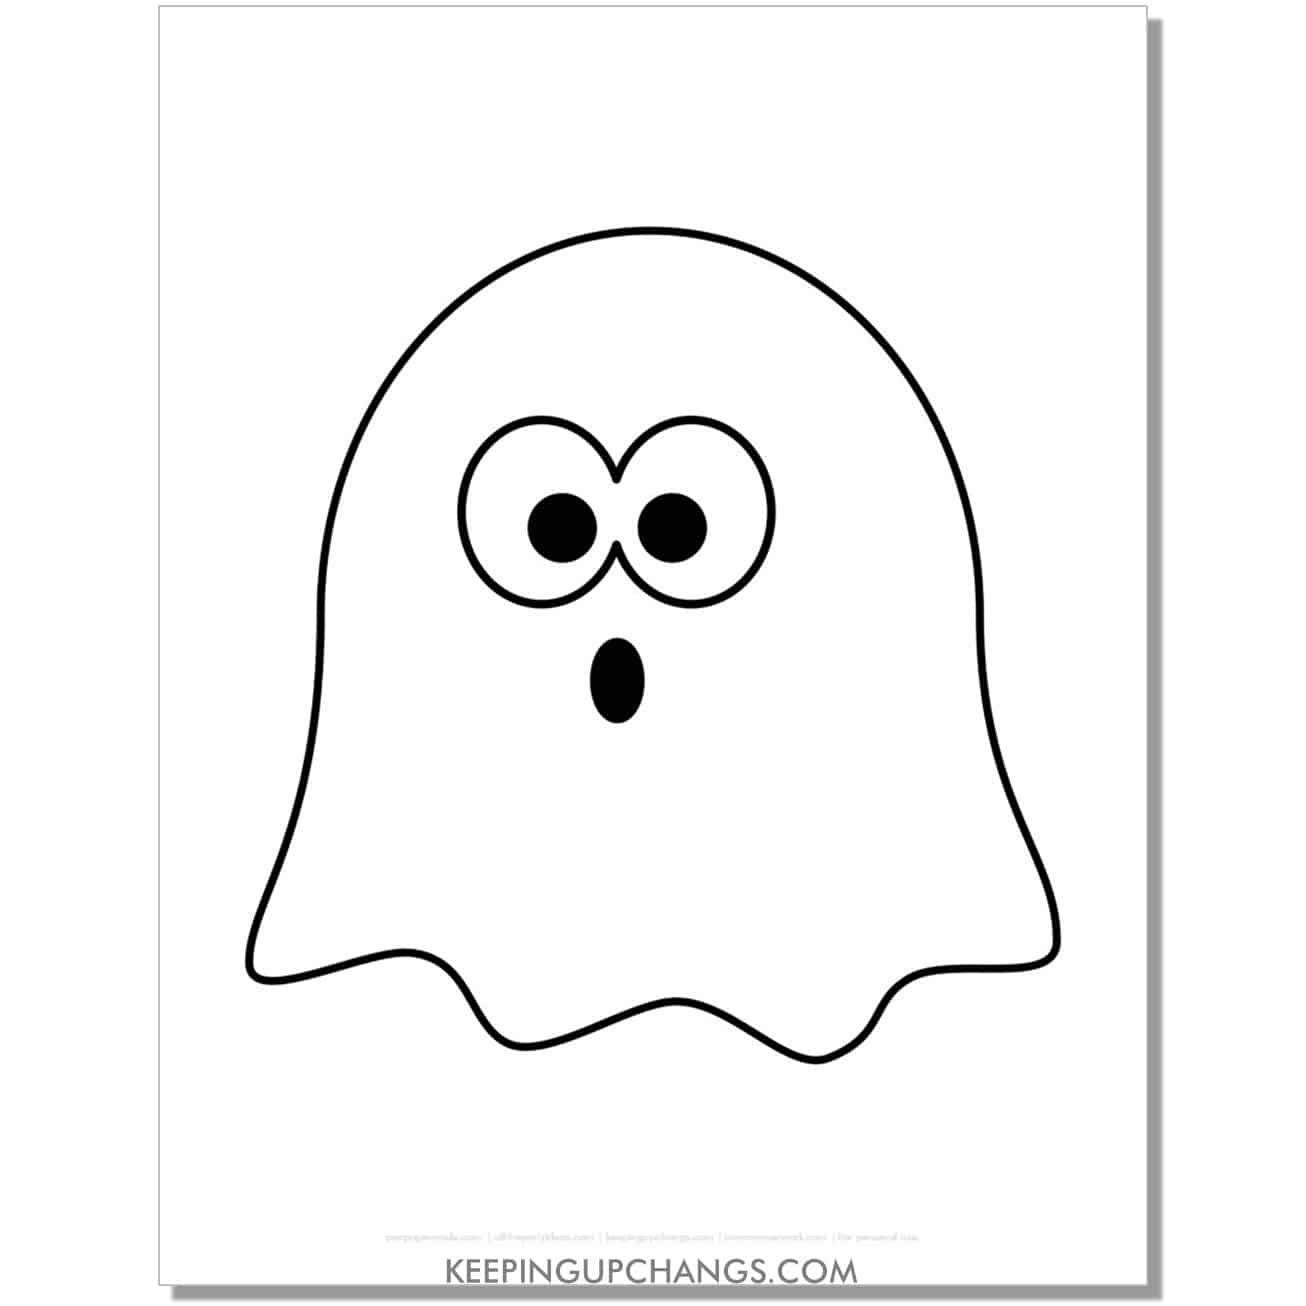 free ghost outline coloring page for kids.